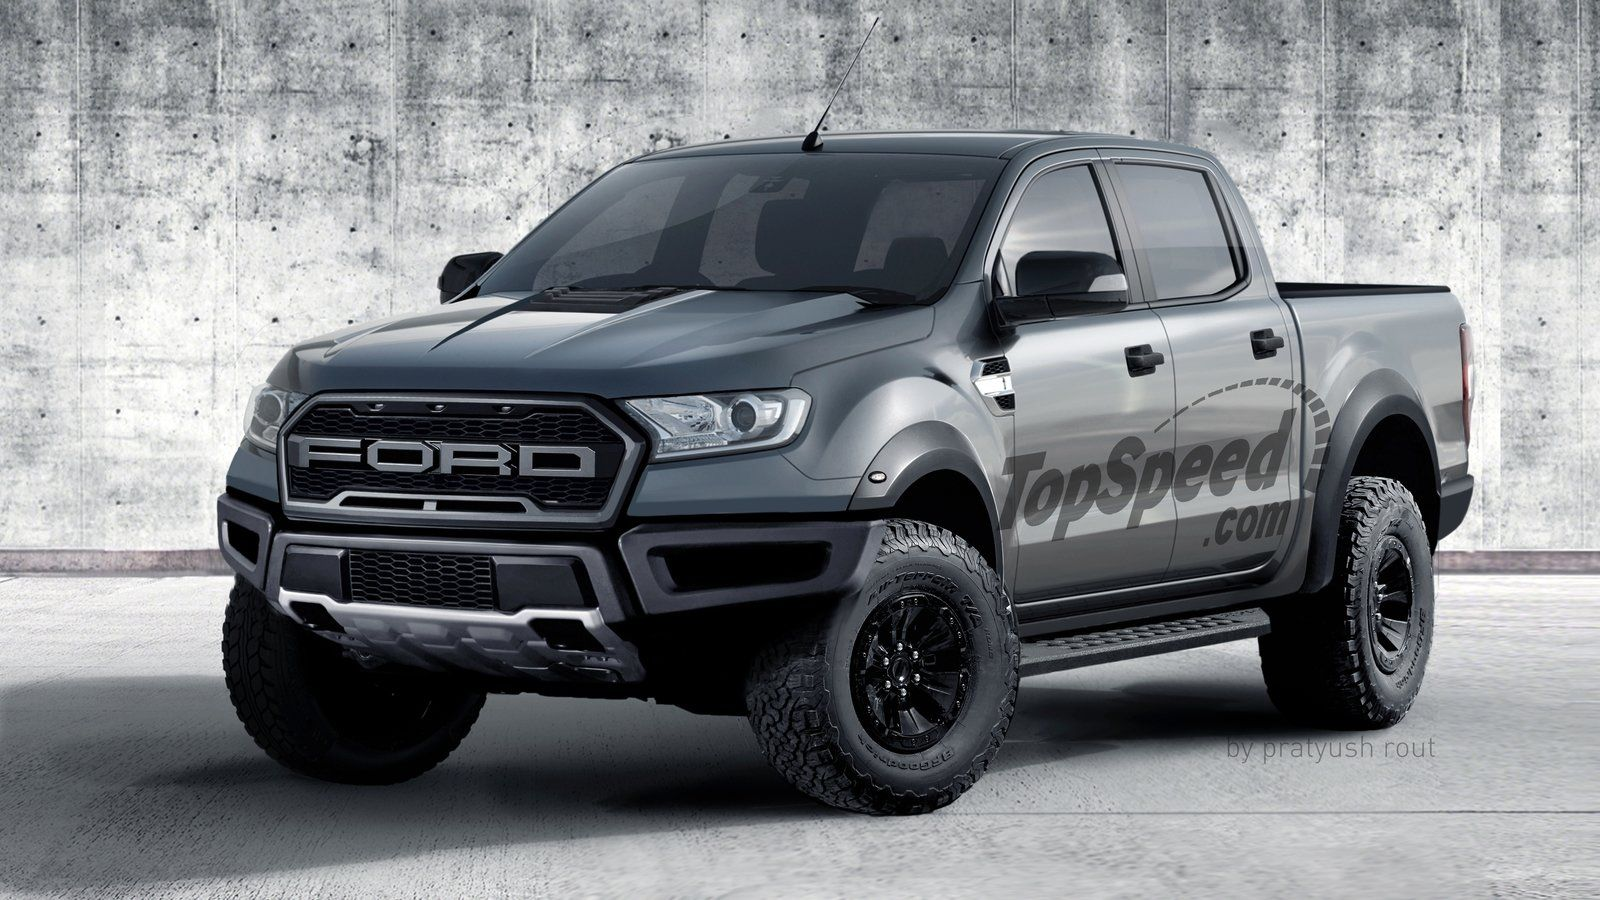 2019 Ford Ranger Raptor Pictures Photos Wallpapers And Video